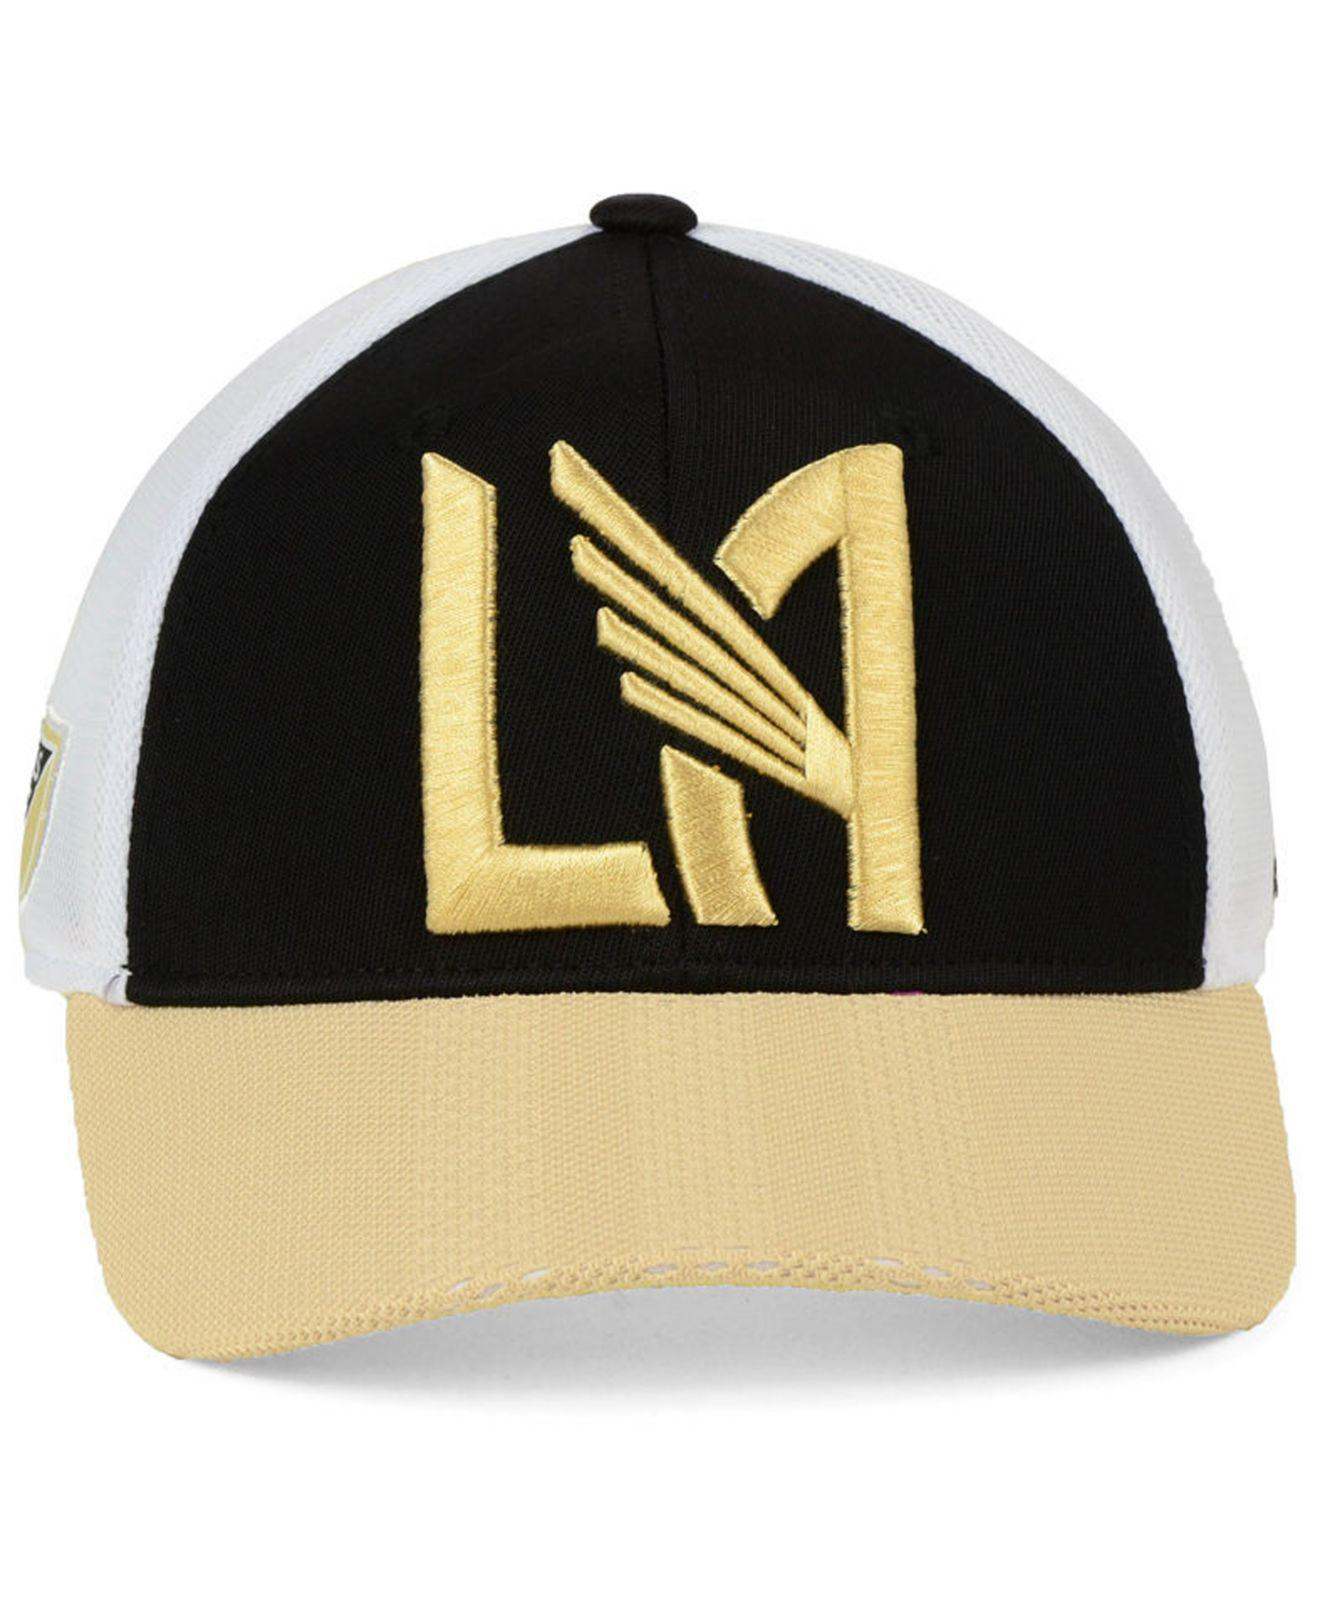 hot sale online bb3b7 60b91 ... purchase lyst adidas los angeles football club authentic mesh  adjustable cap in black for men 87c37